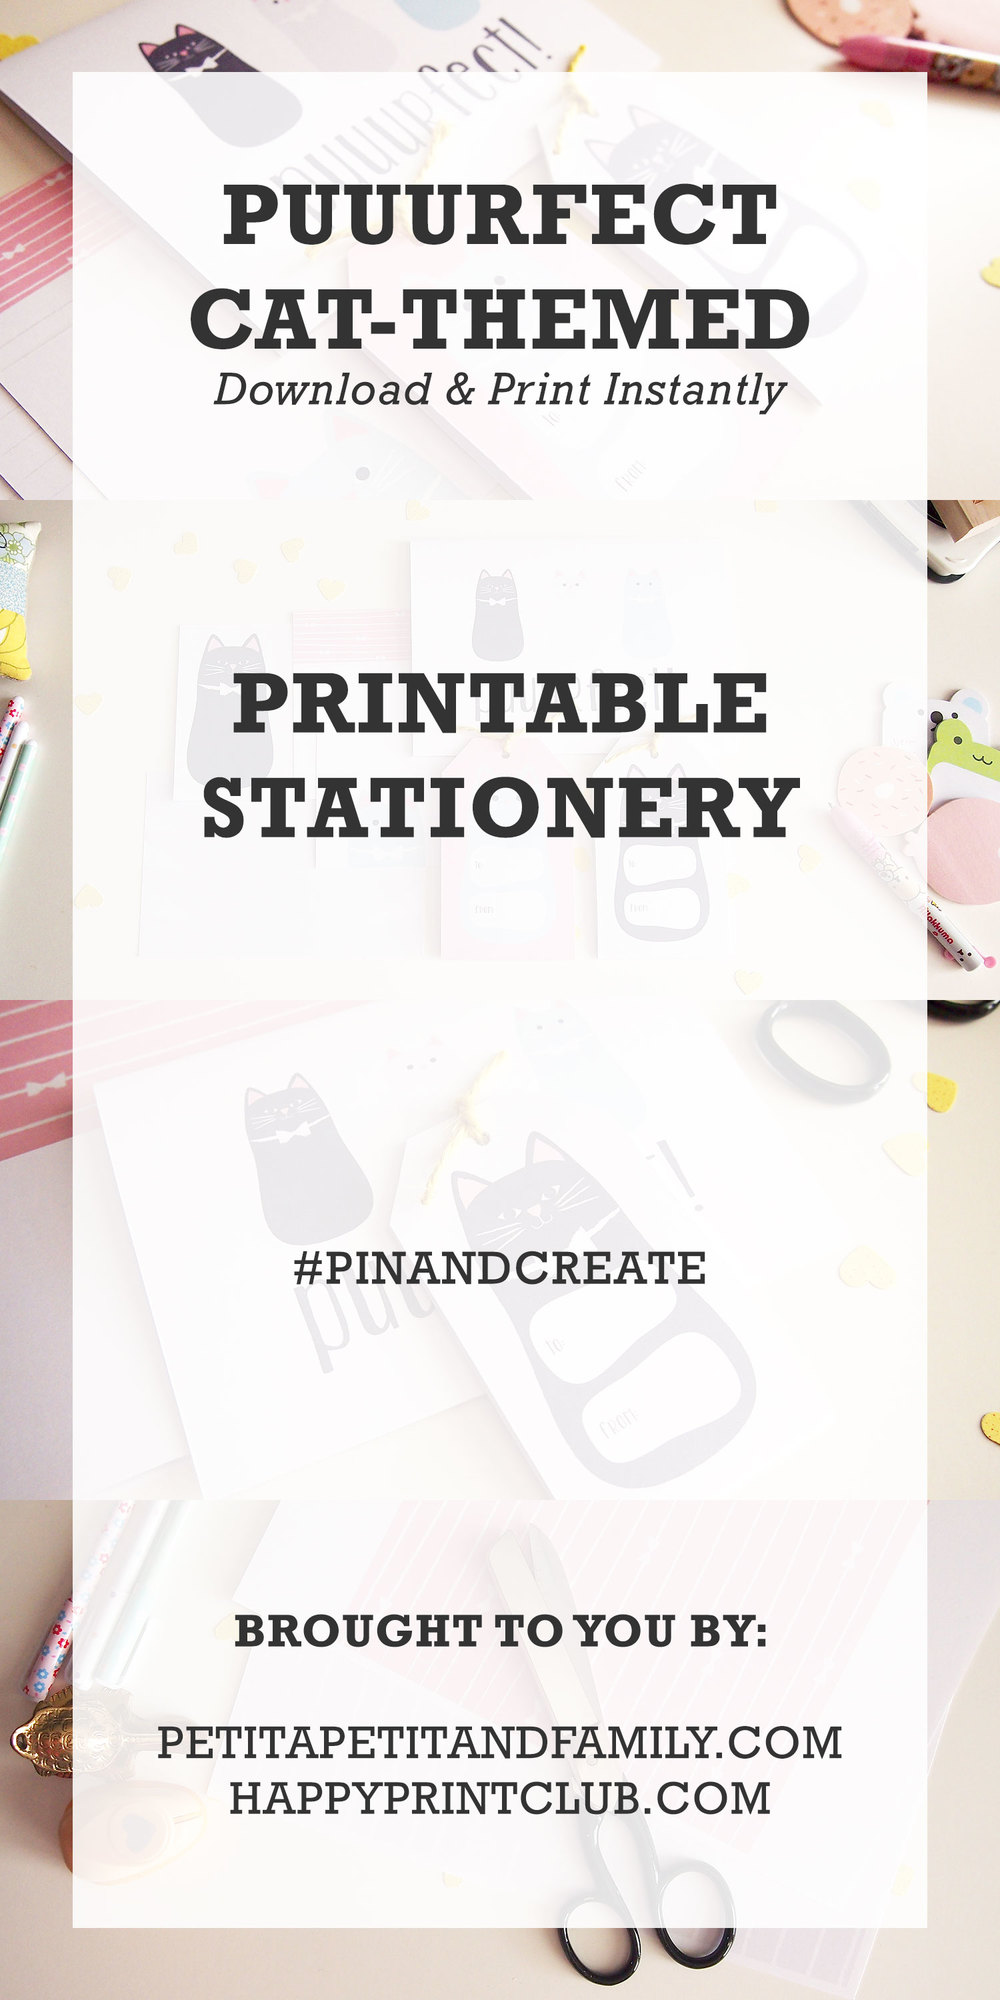 Puuurfect Printables